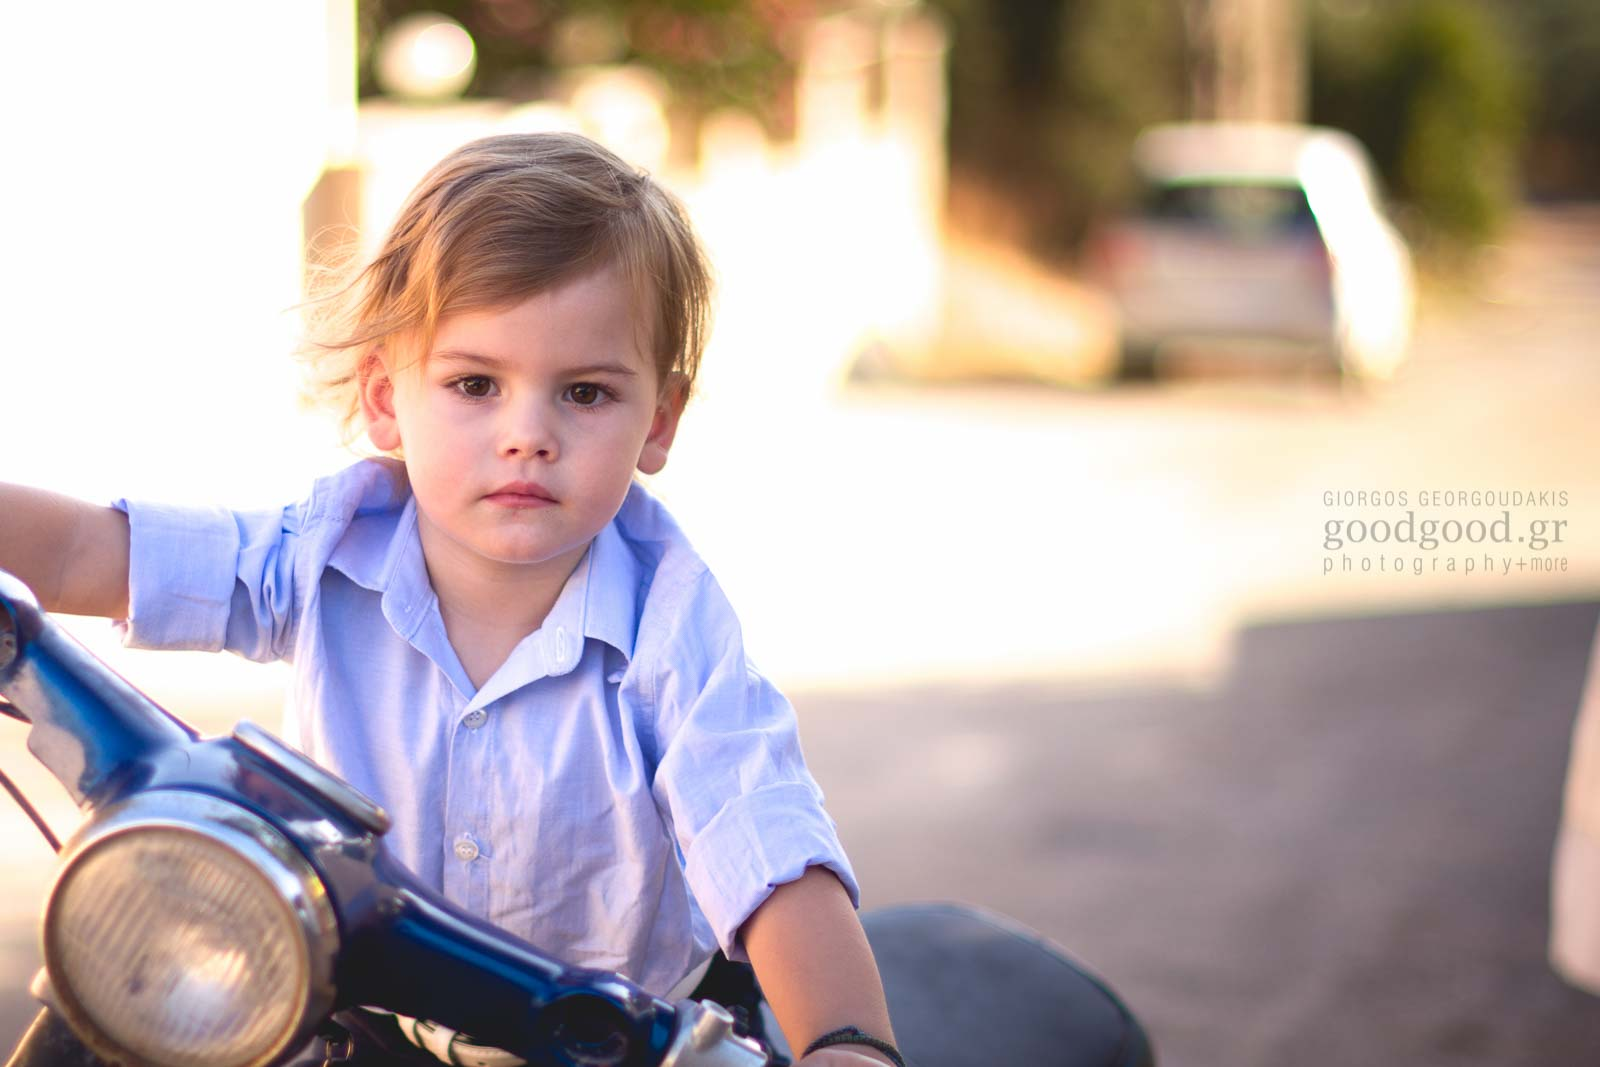 Little boy pretending to ride a motorbike in his baptism day